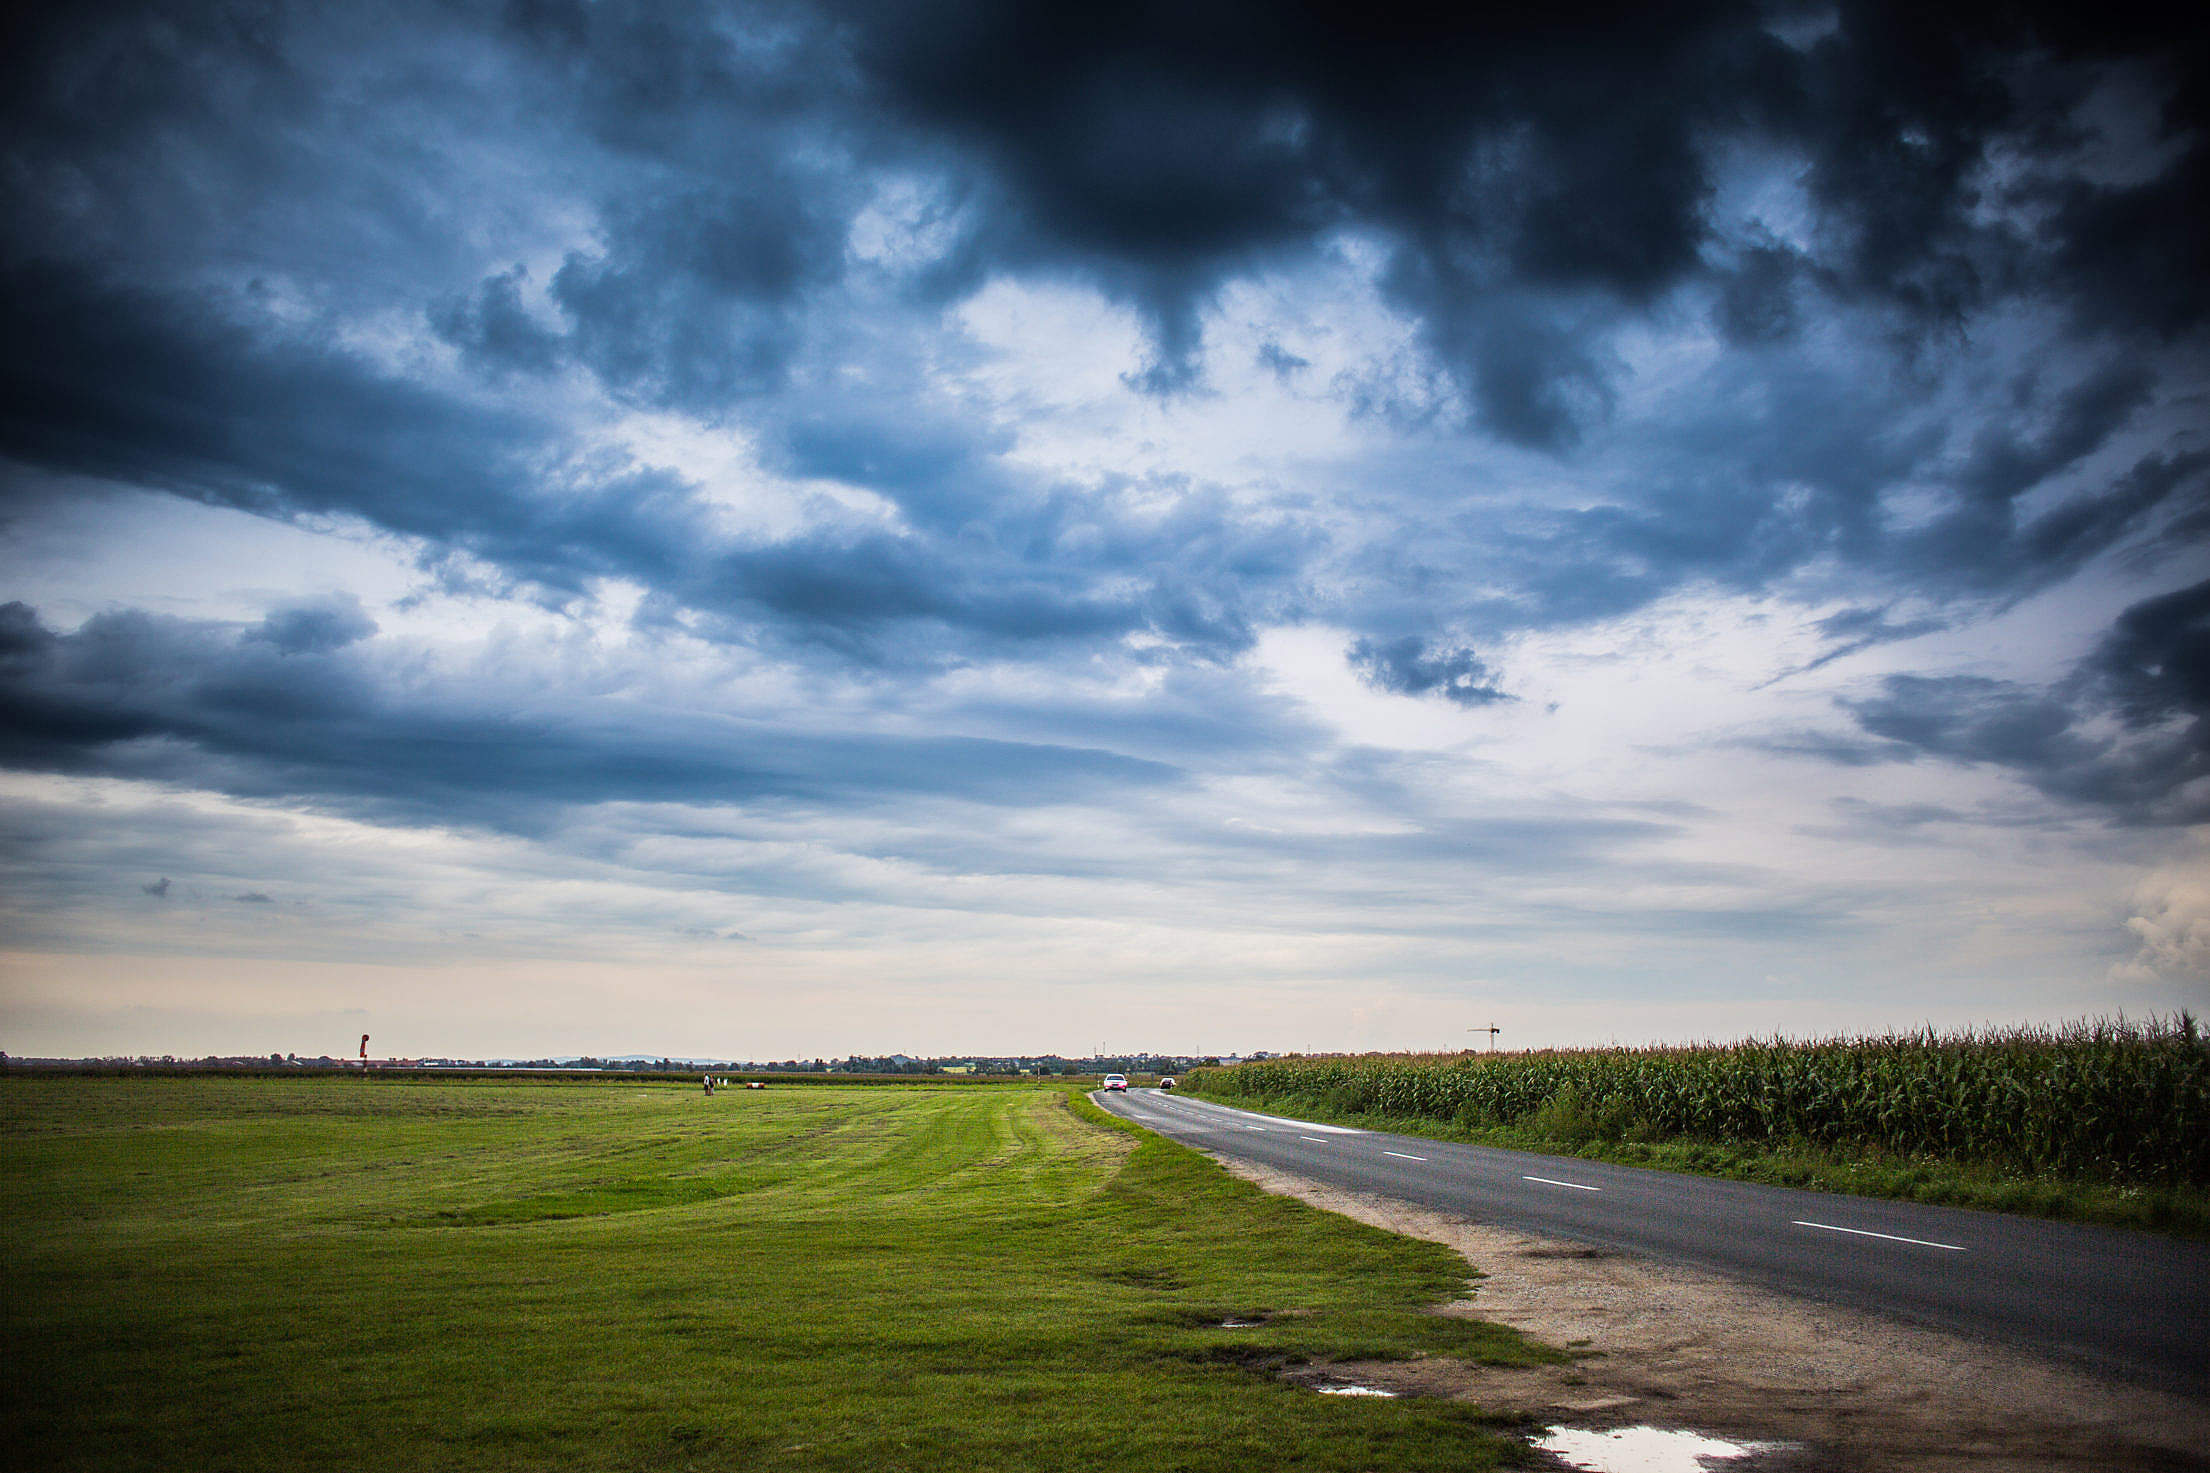 Storm Clouds Over The Road Free Stock Photo